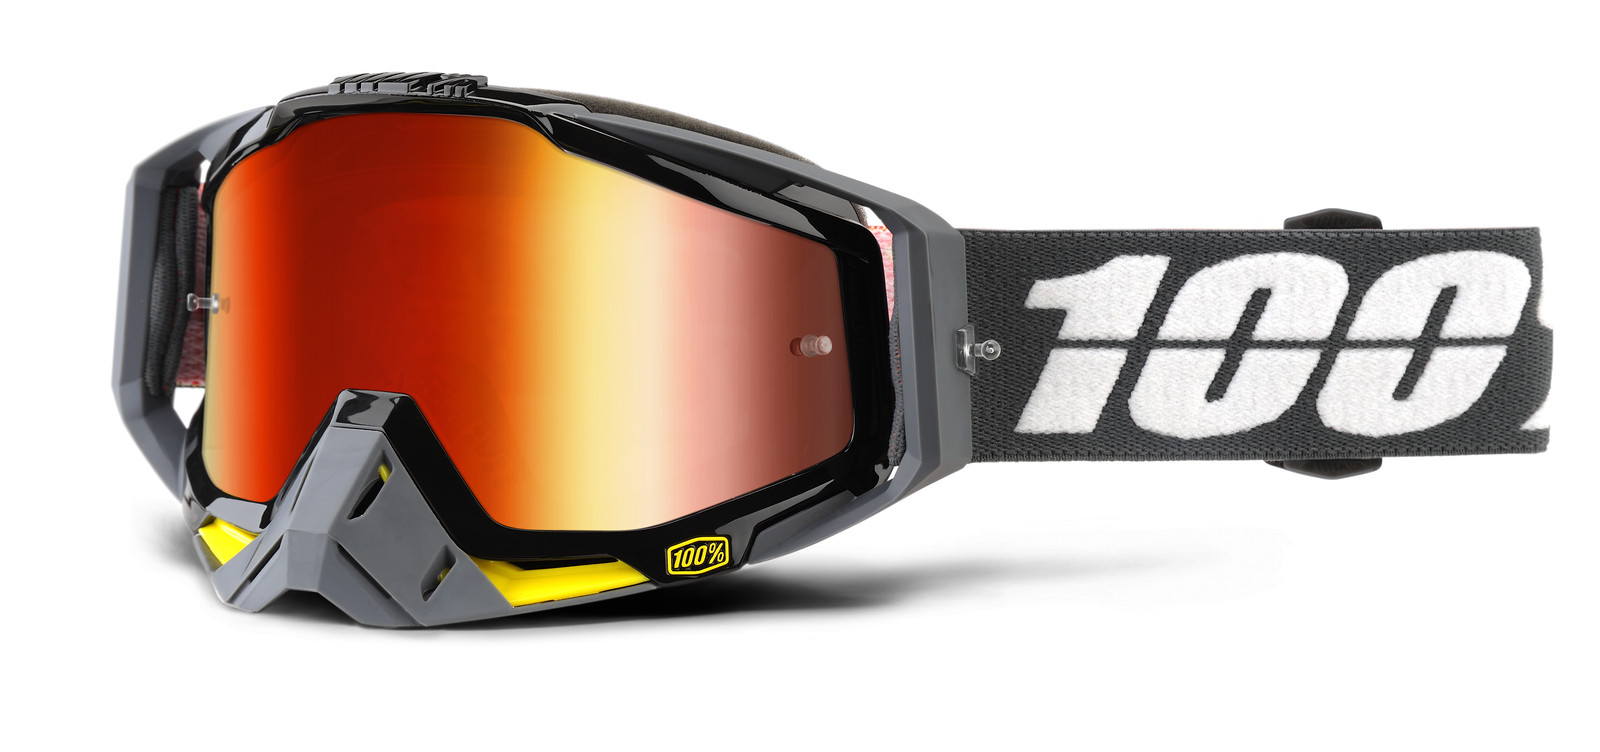 Racecraft Fortis Goggle - Mirror Red Lens - 100percent - Motocross Pictures - Vital MX